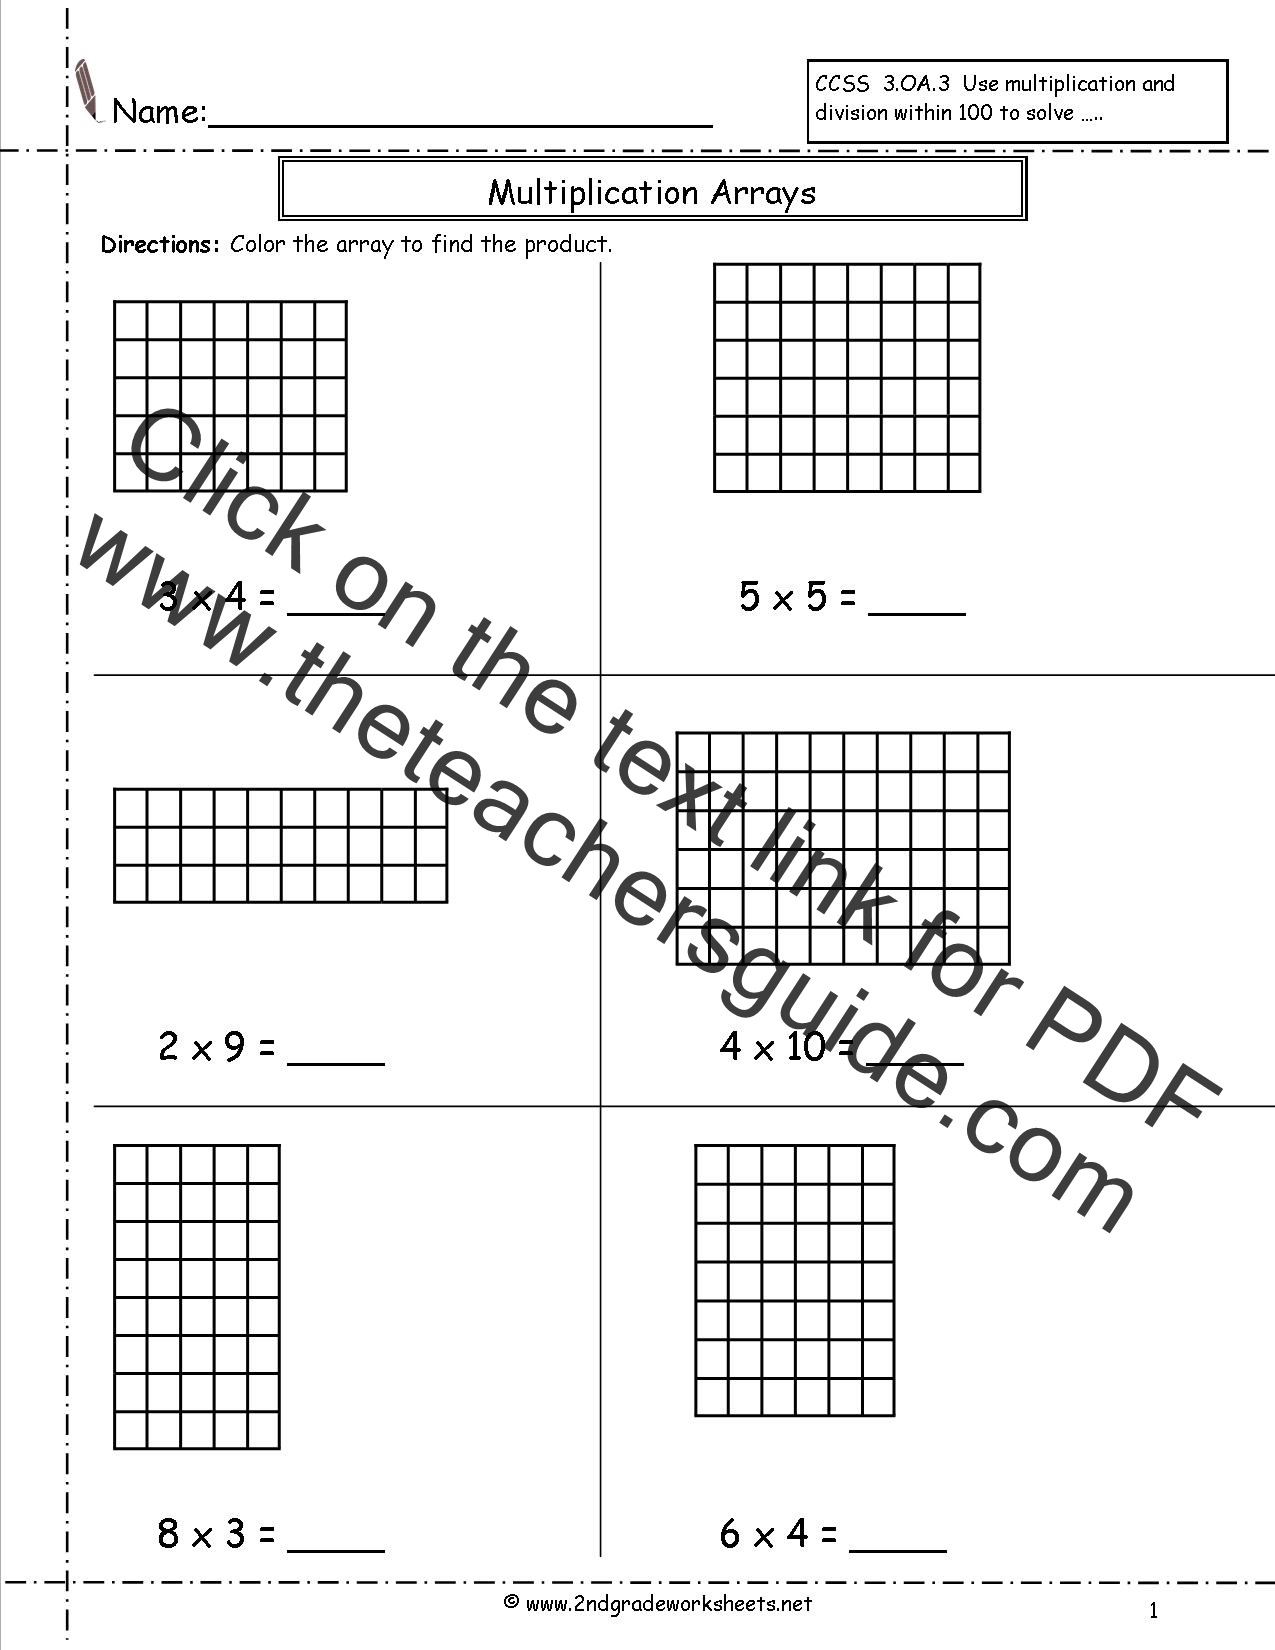 Multiplication Arrays Worksheets – Array Multiplication Worksheets